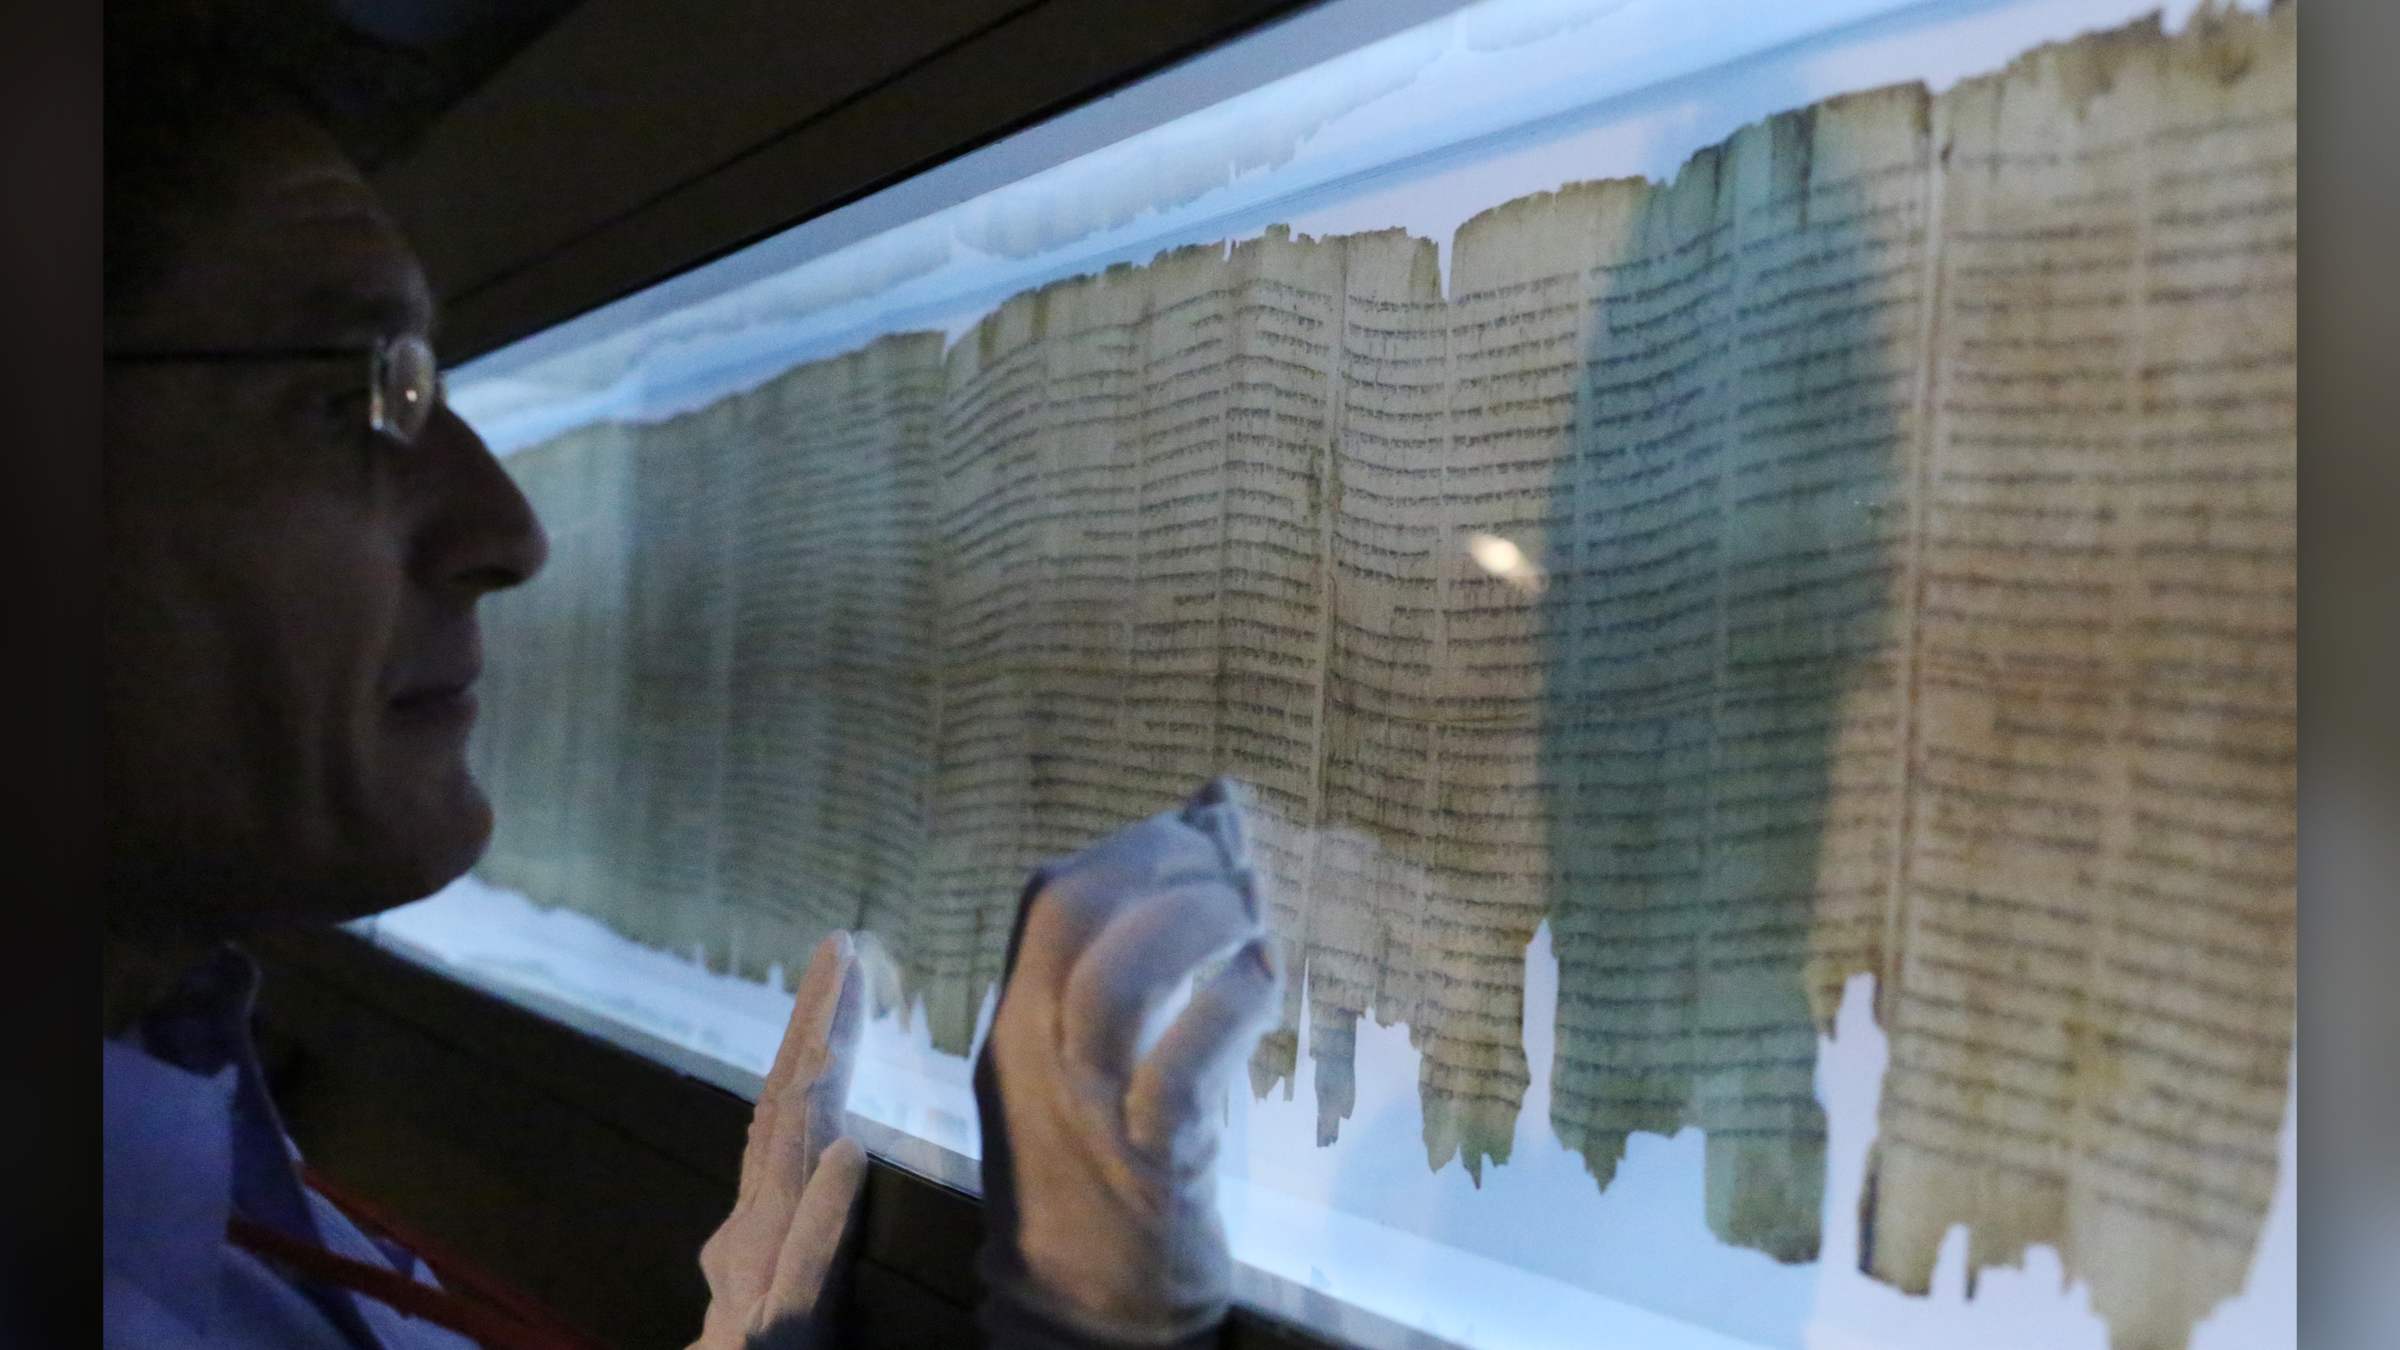 Mysterious second writer of Dead Sea Scroll uncovered by AI